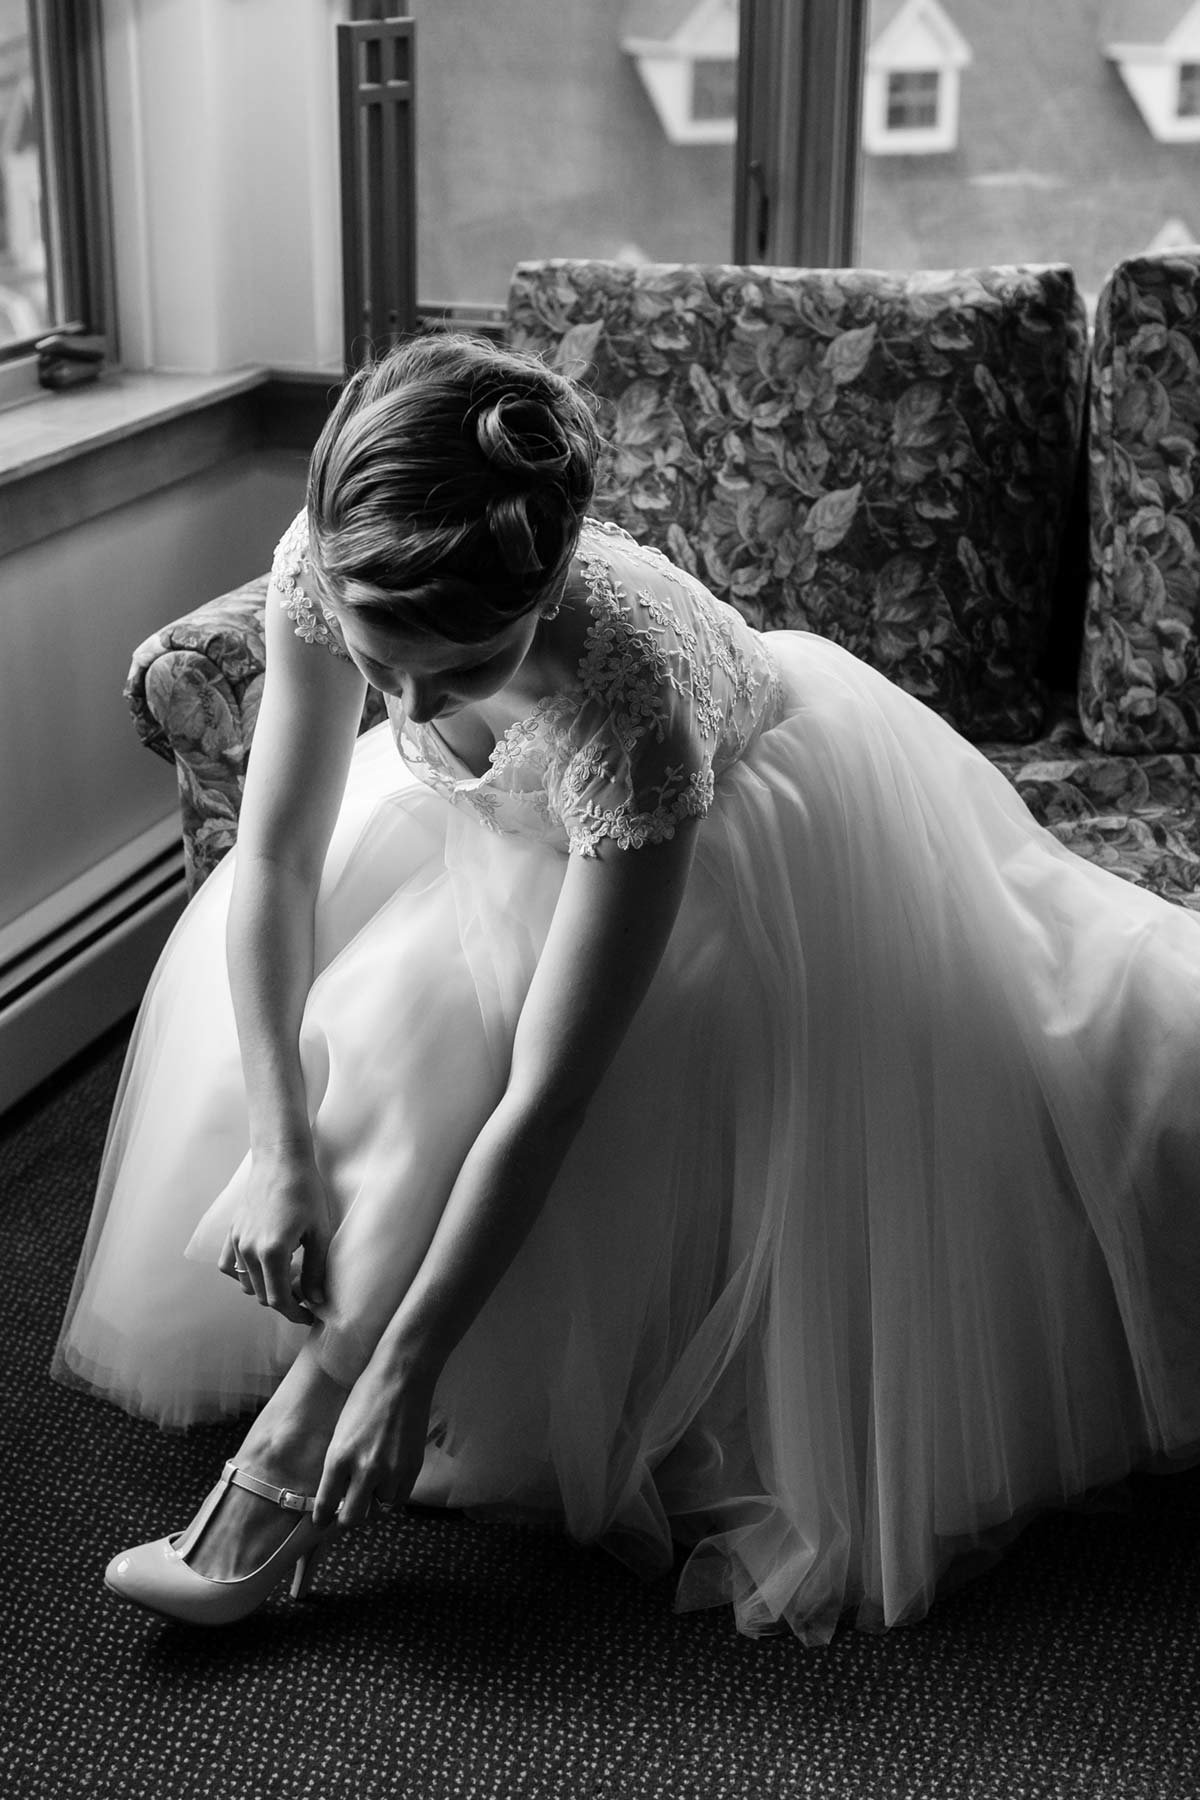 Loon Mountain Resort NH Wedding Photographers Image New Hampshire Bride getting ready I am Sarah V Photography